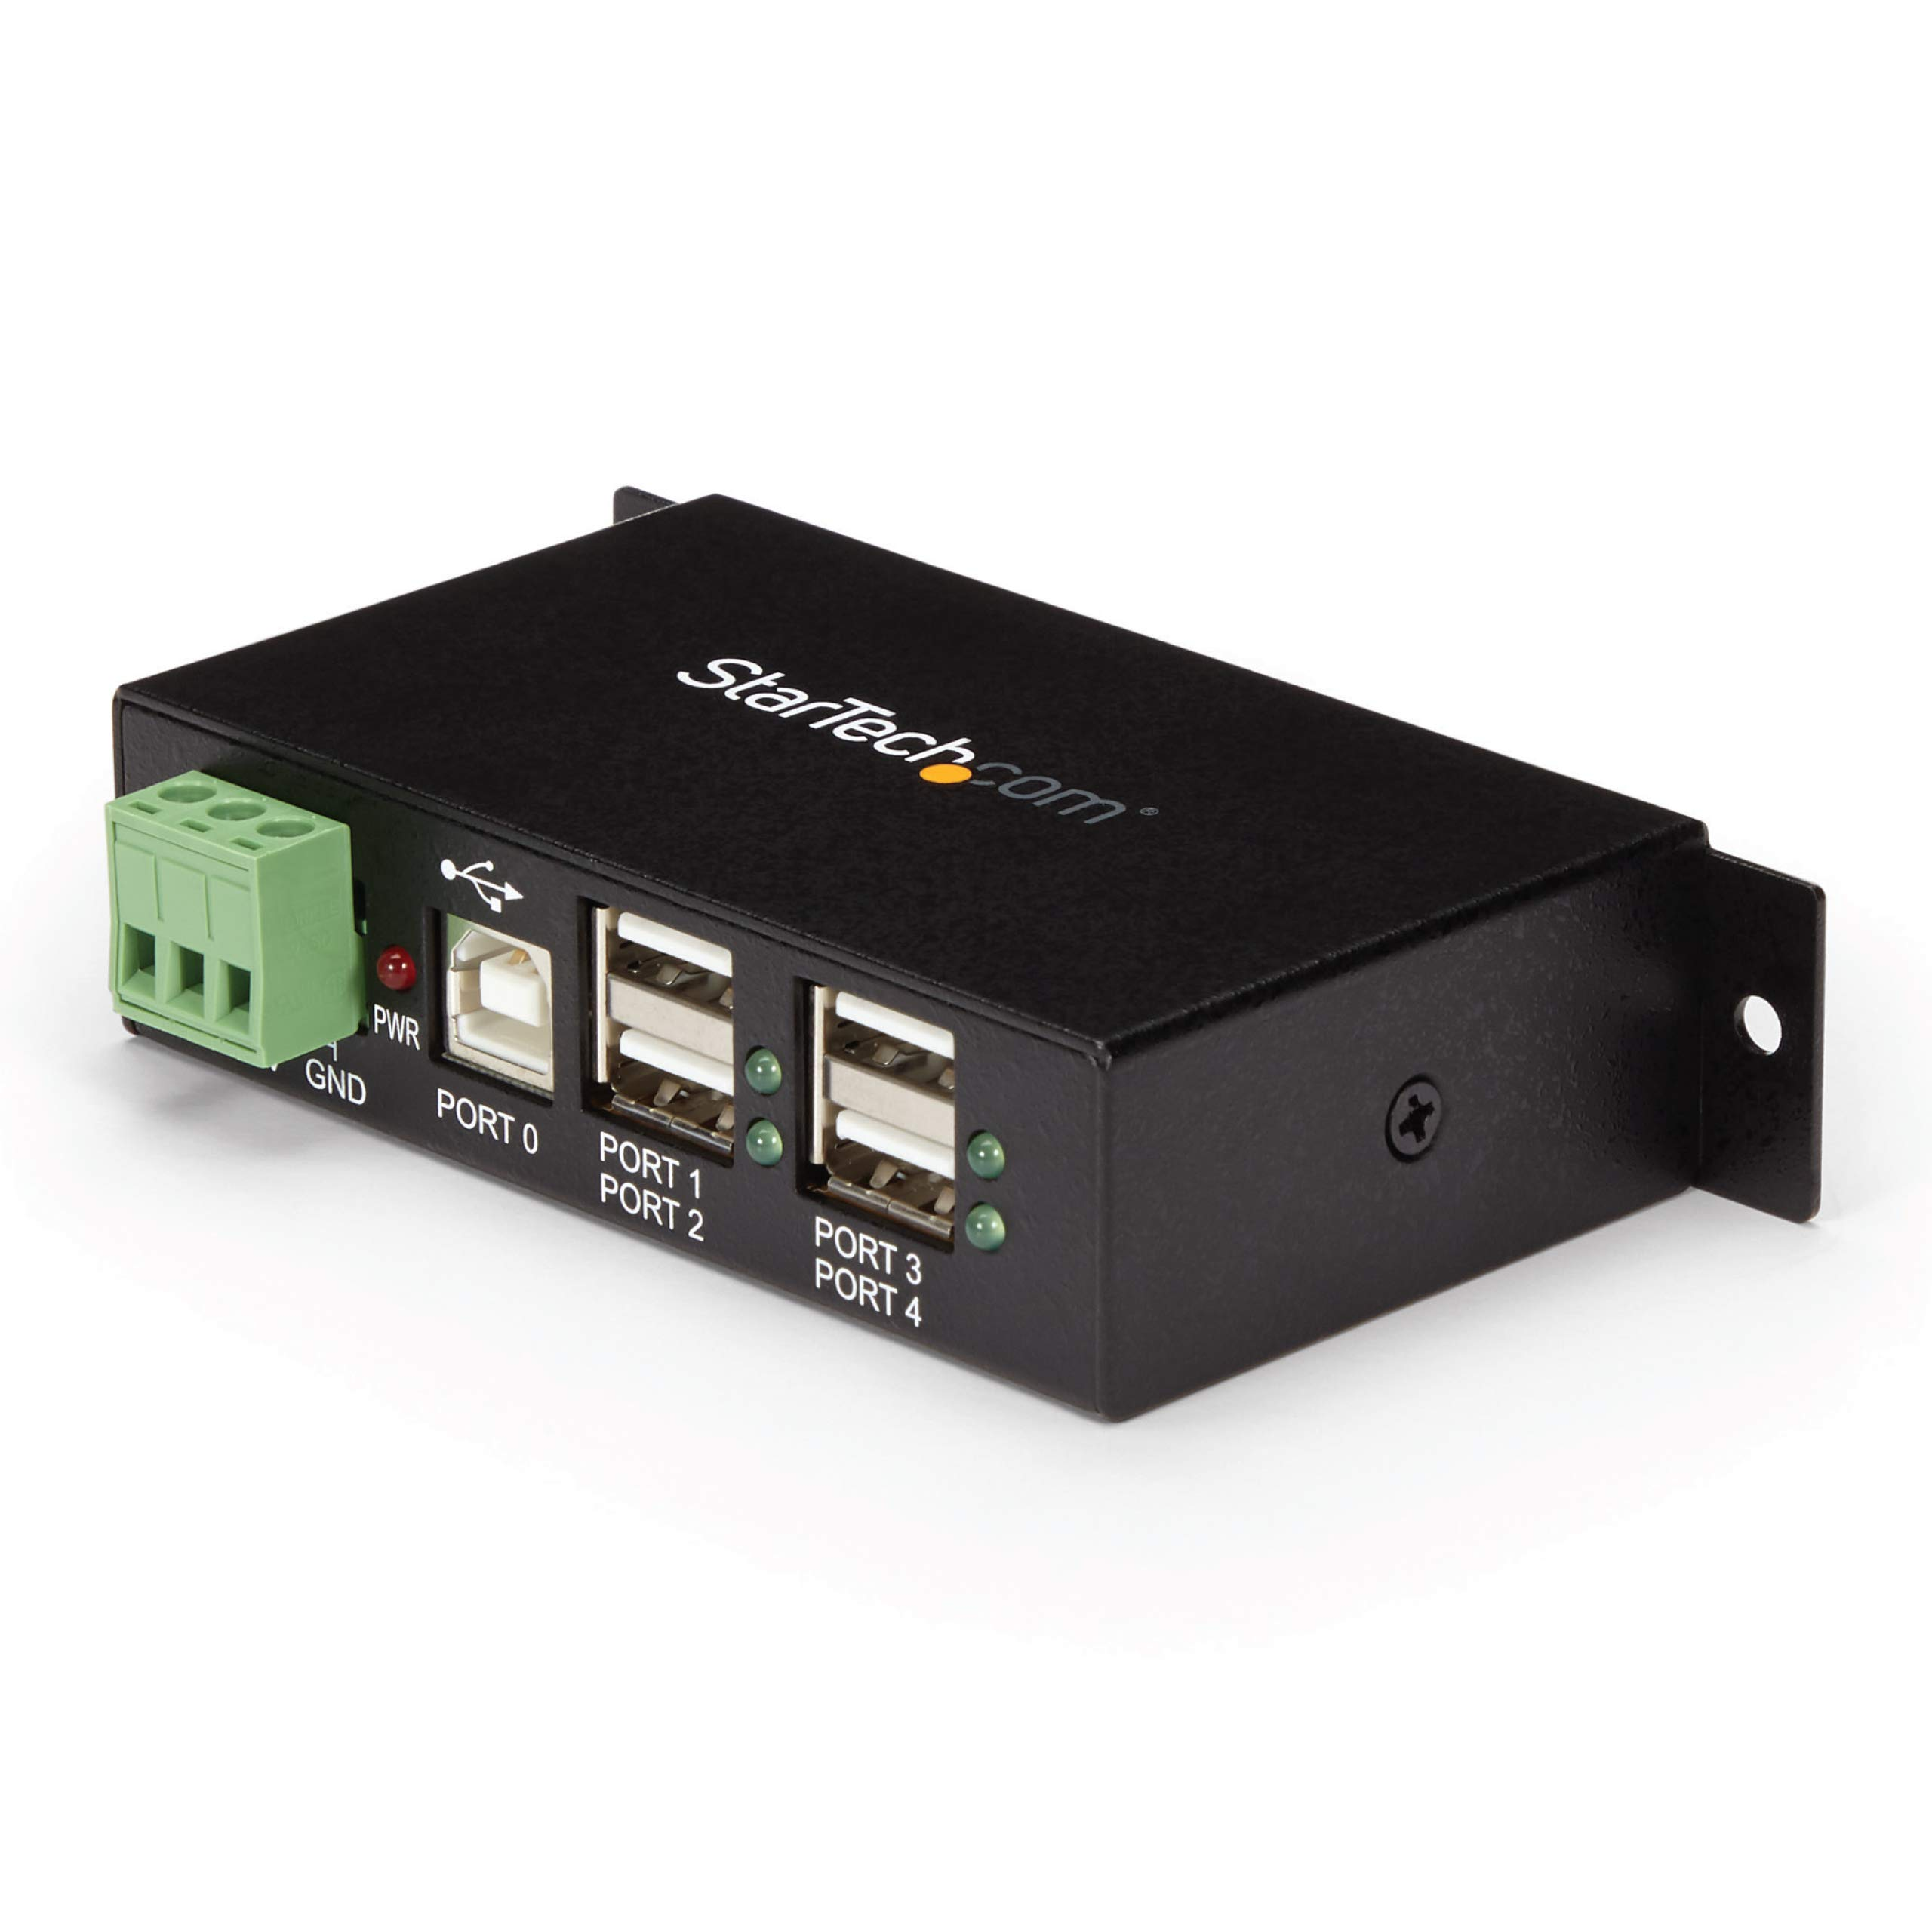 StarTech.com 4-Port Industrial USB 2.0 Hub with ESD Protection - Mountable - Multiport Hub (ST4200USBM) by StarTech